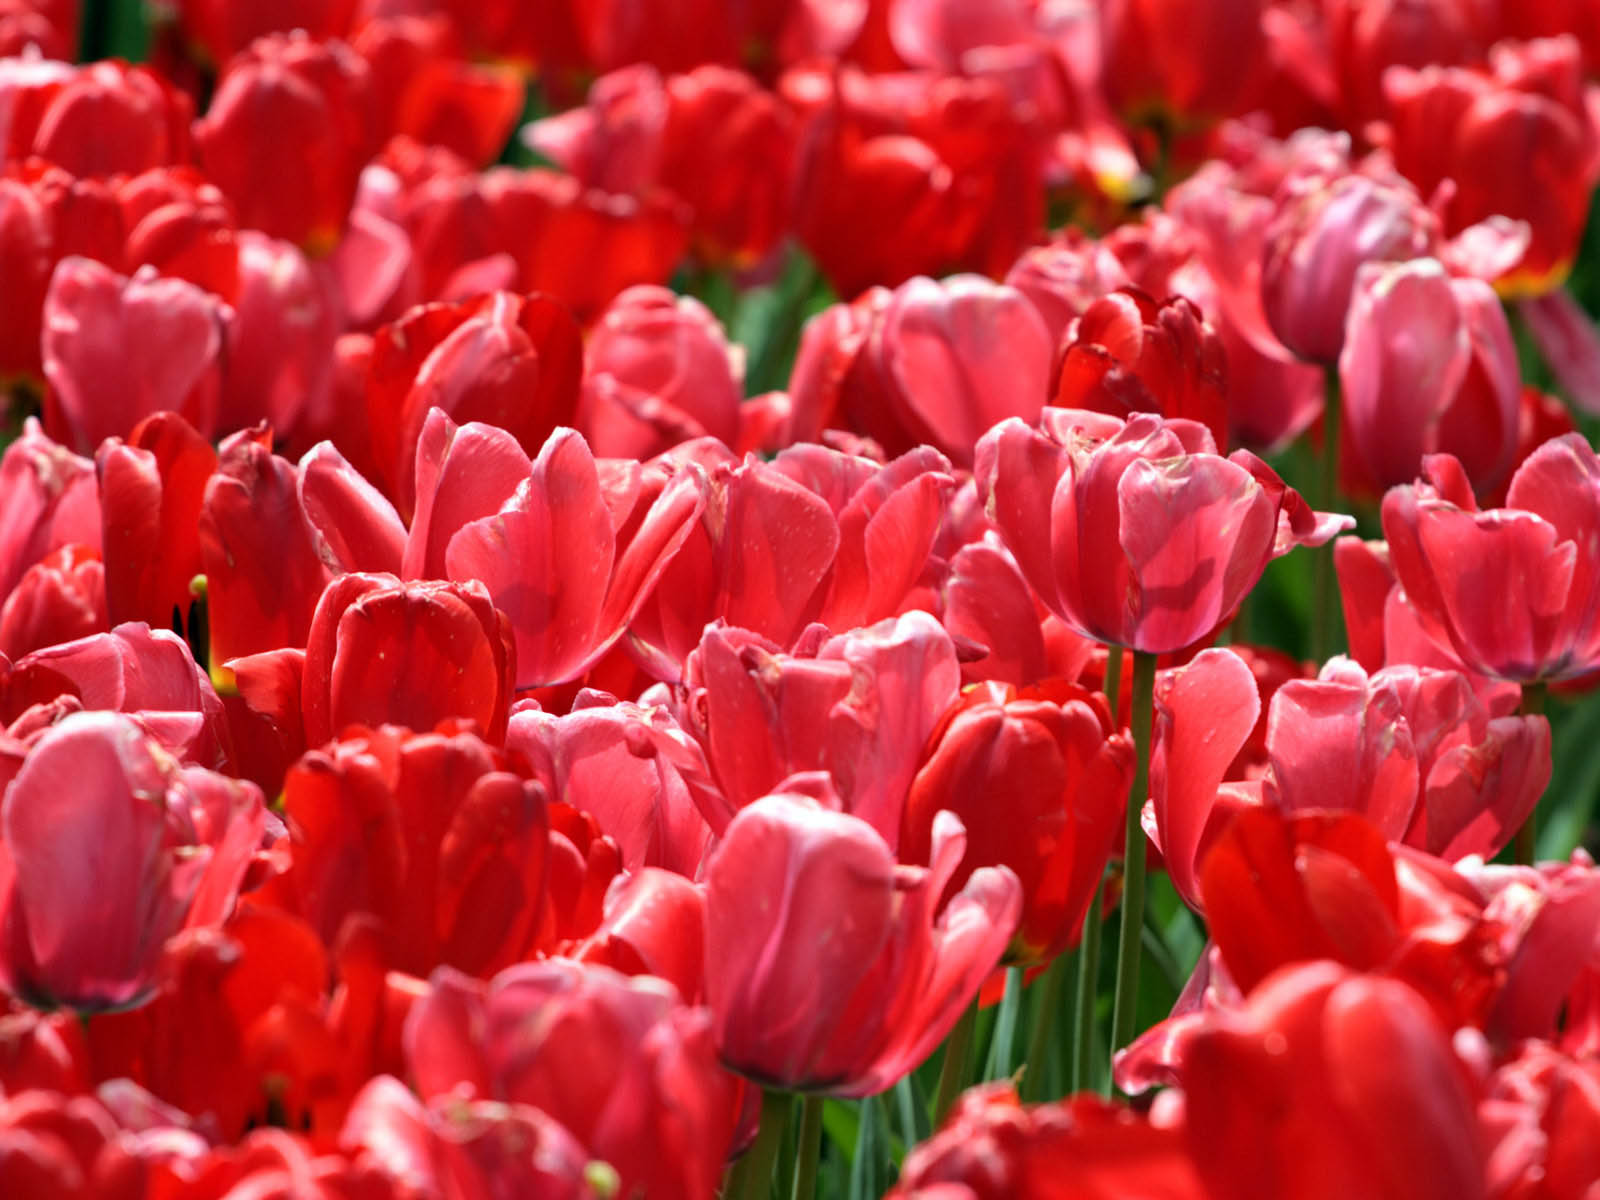 http://wallpaperstobackground.blogspot.ca/2012/07/red-tulips-wallpapers.html